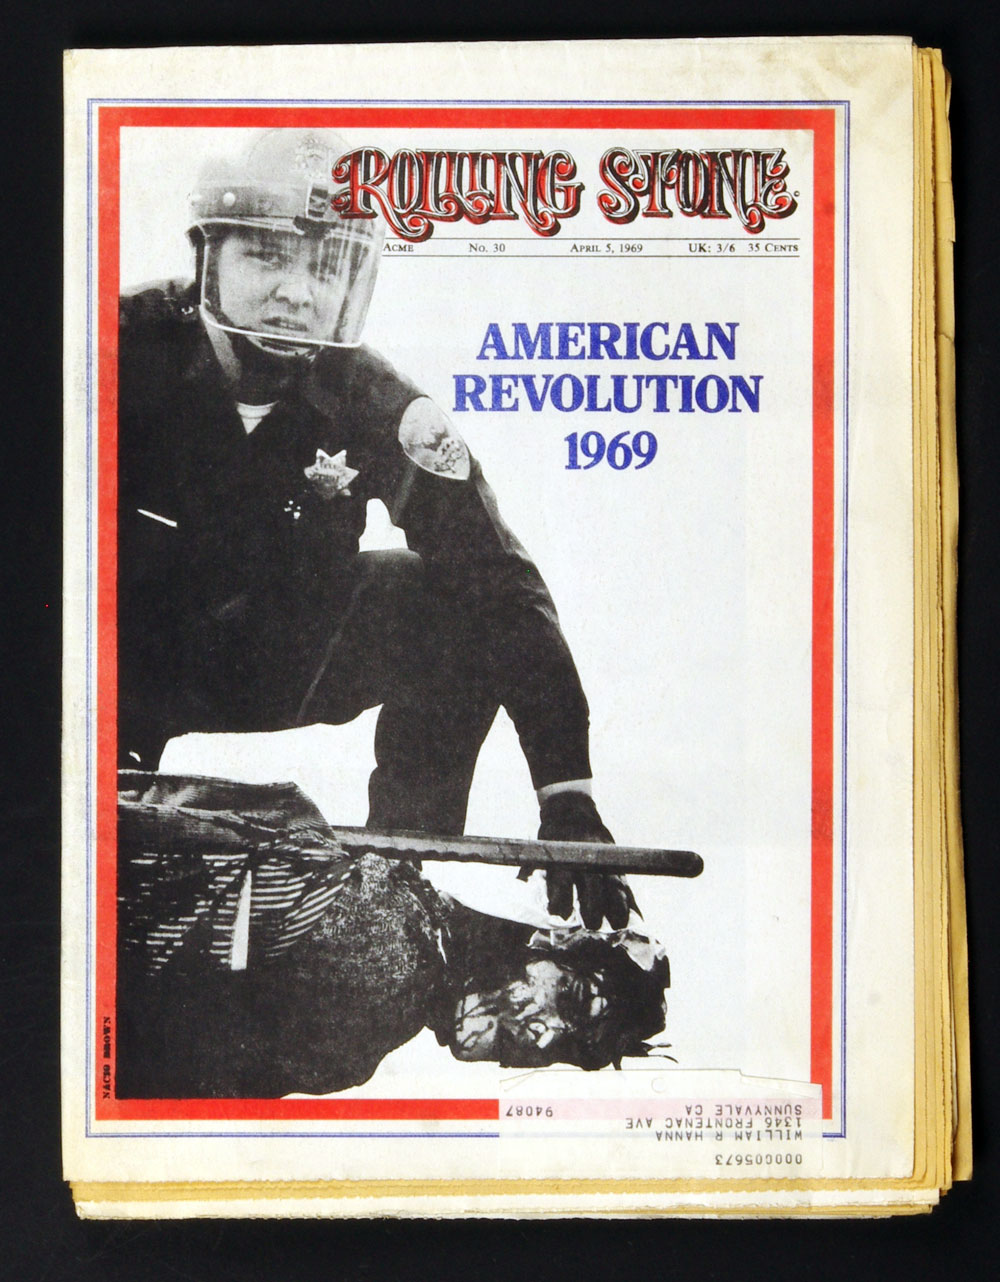 Rolling Stone Magazine 1969 Apr 5 No. 30 Wanted Jim Morrison In the County of Dade